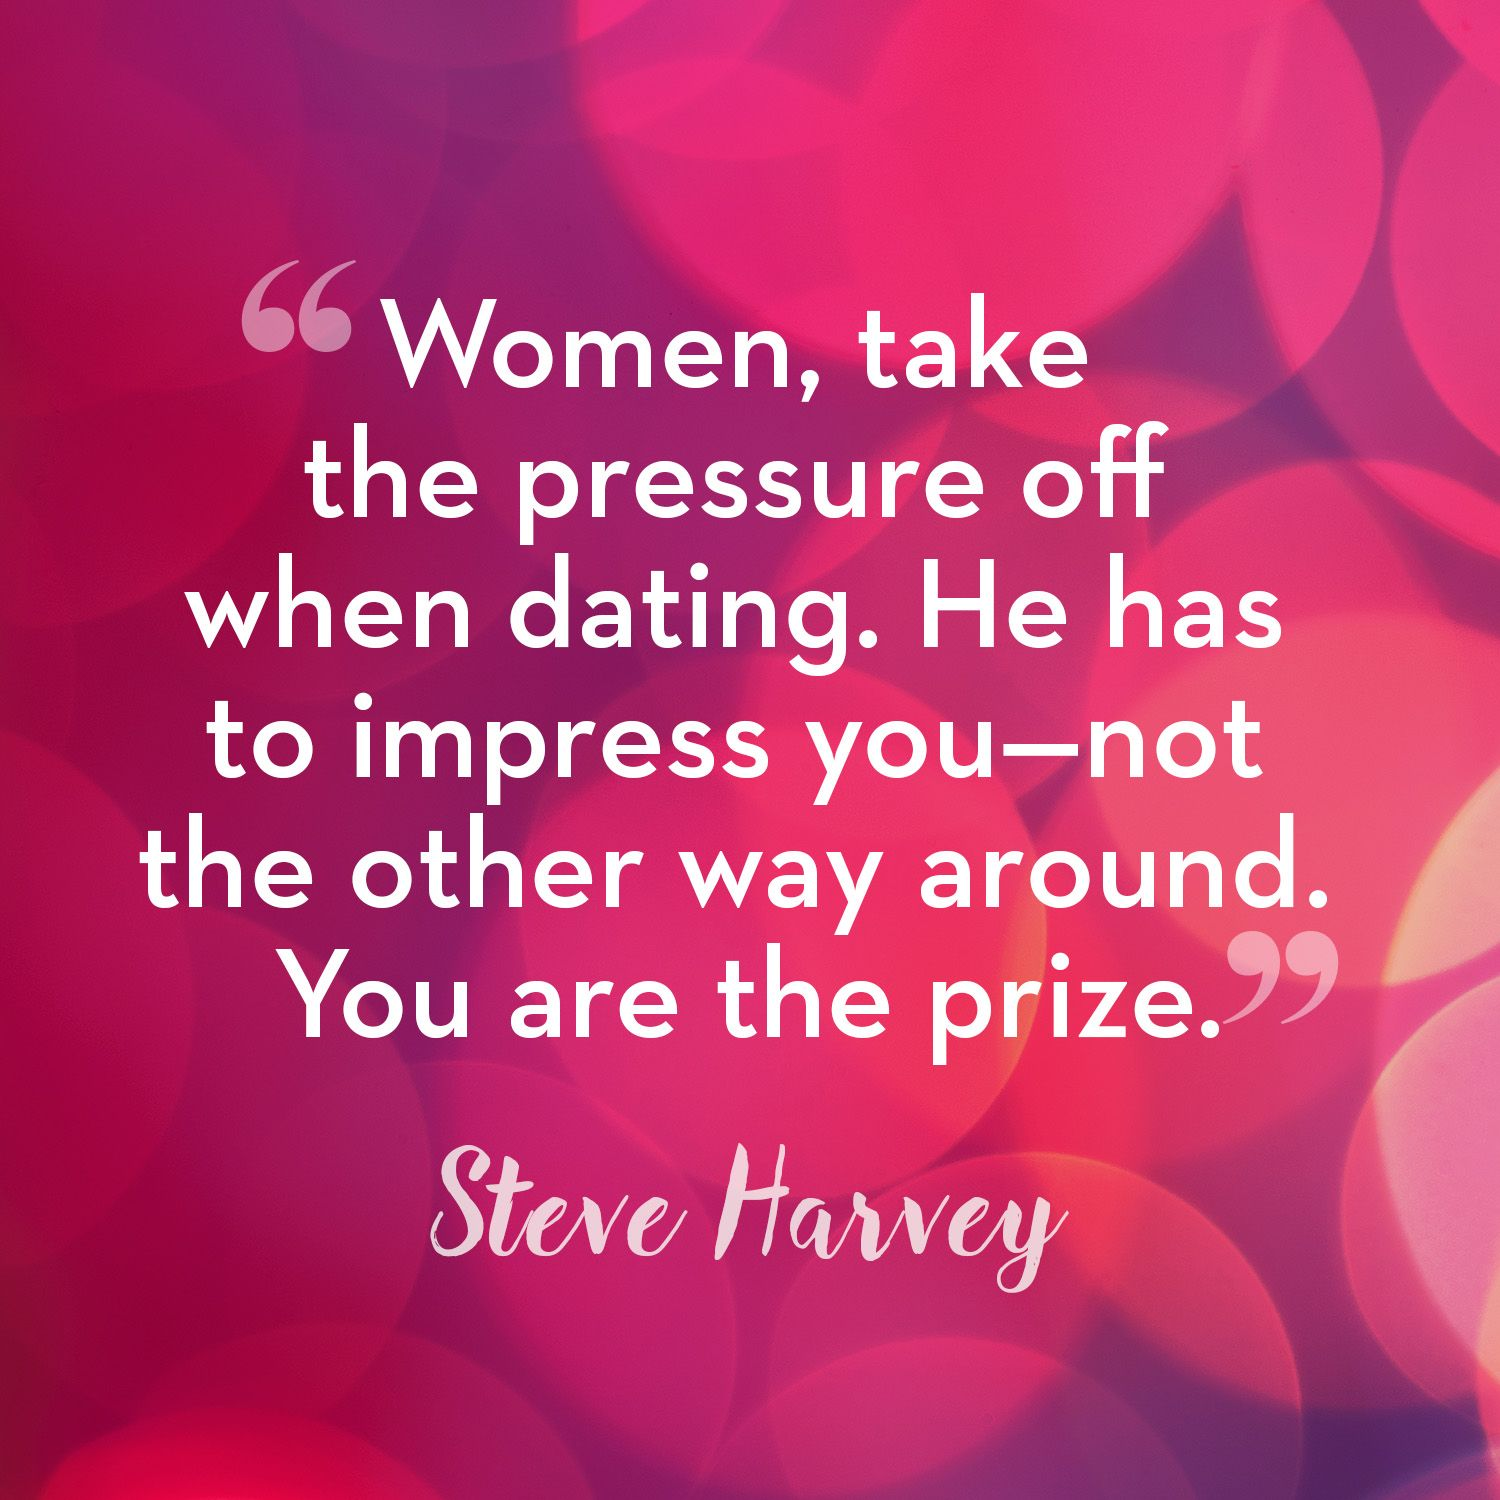 How To Love A Woman Quotes 50 Best Relationship Quotes From Steve Harvey  Steve Harvey